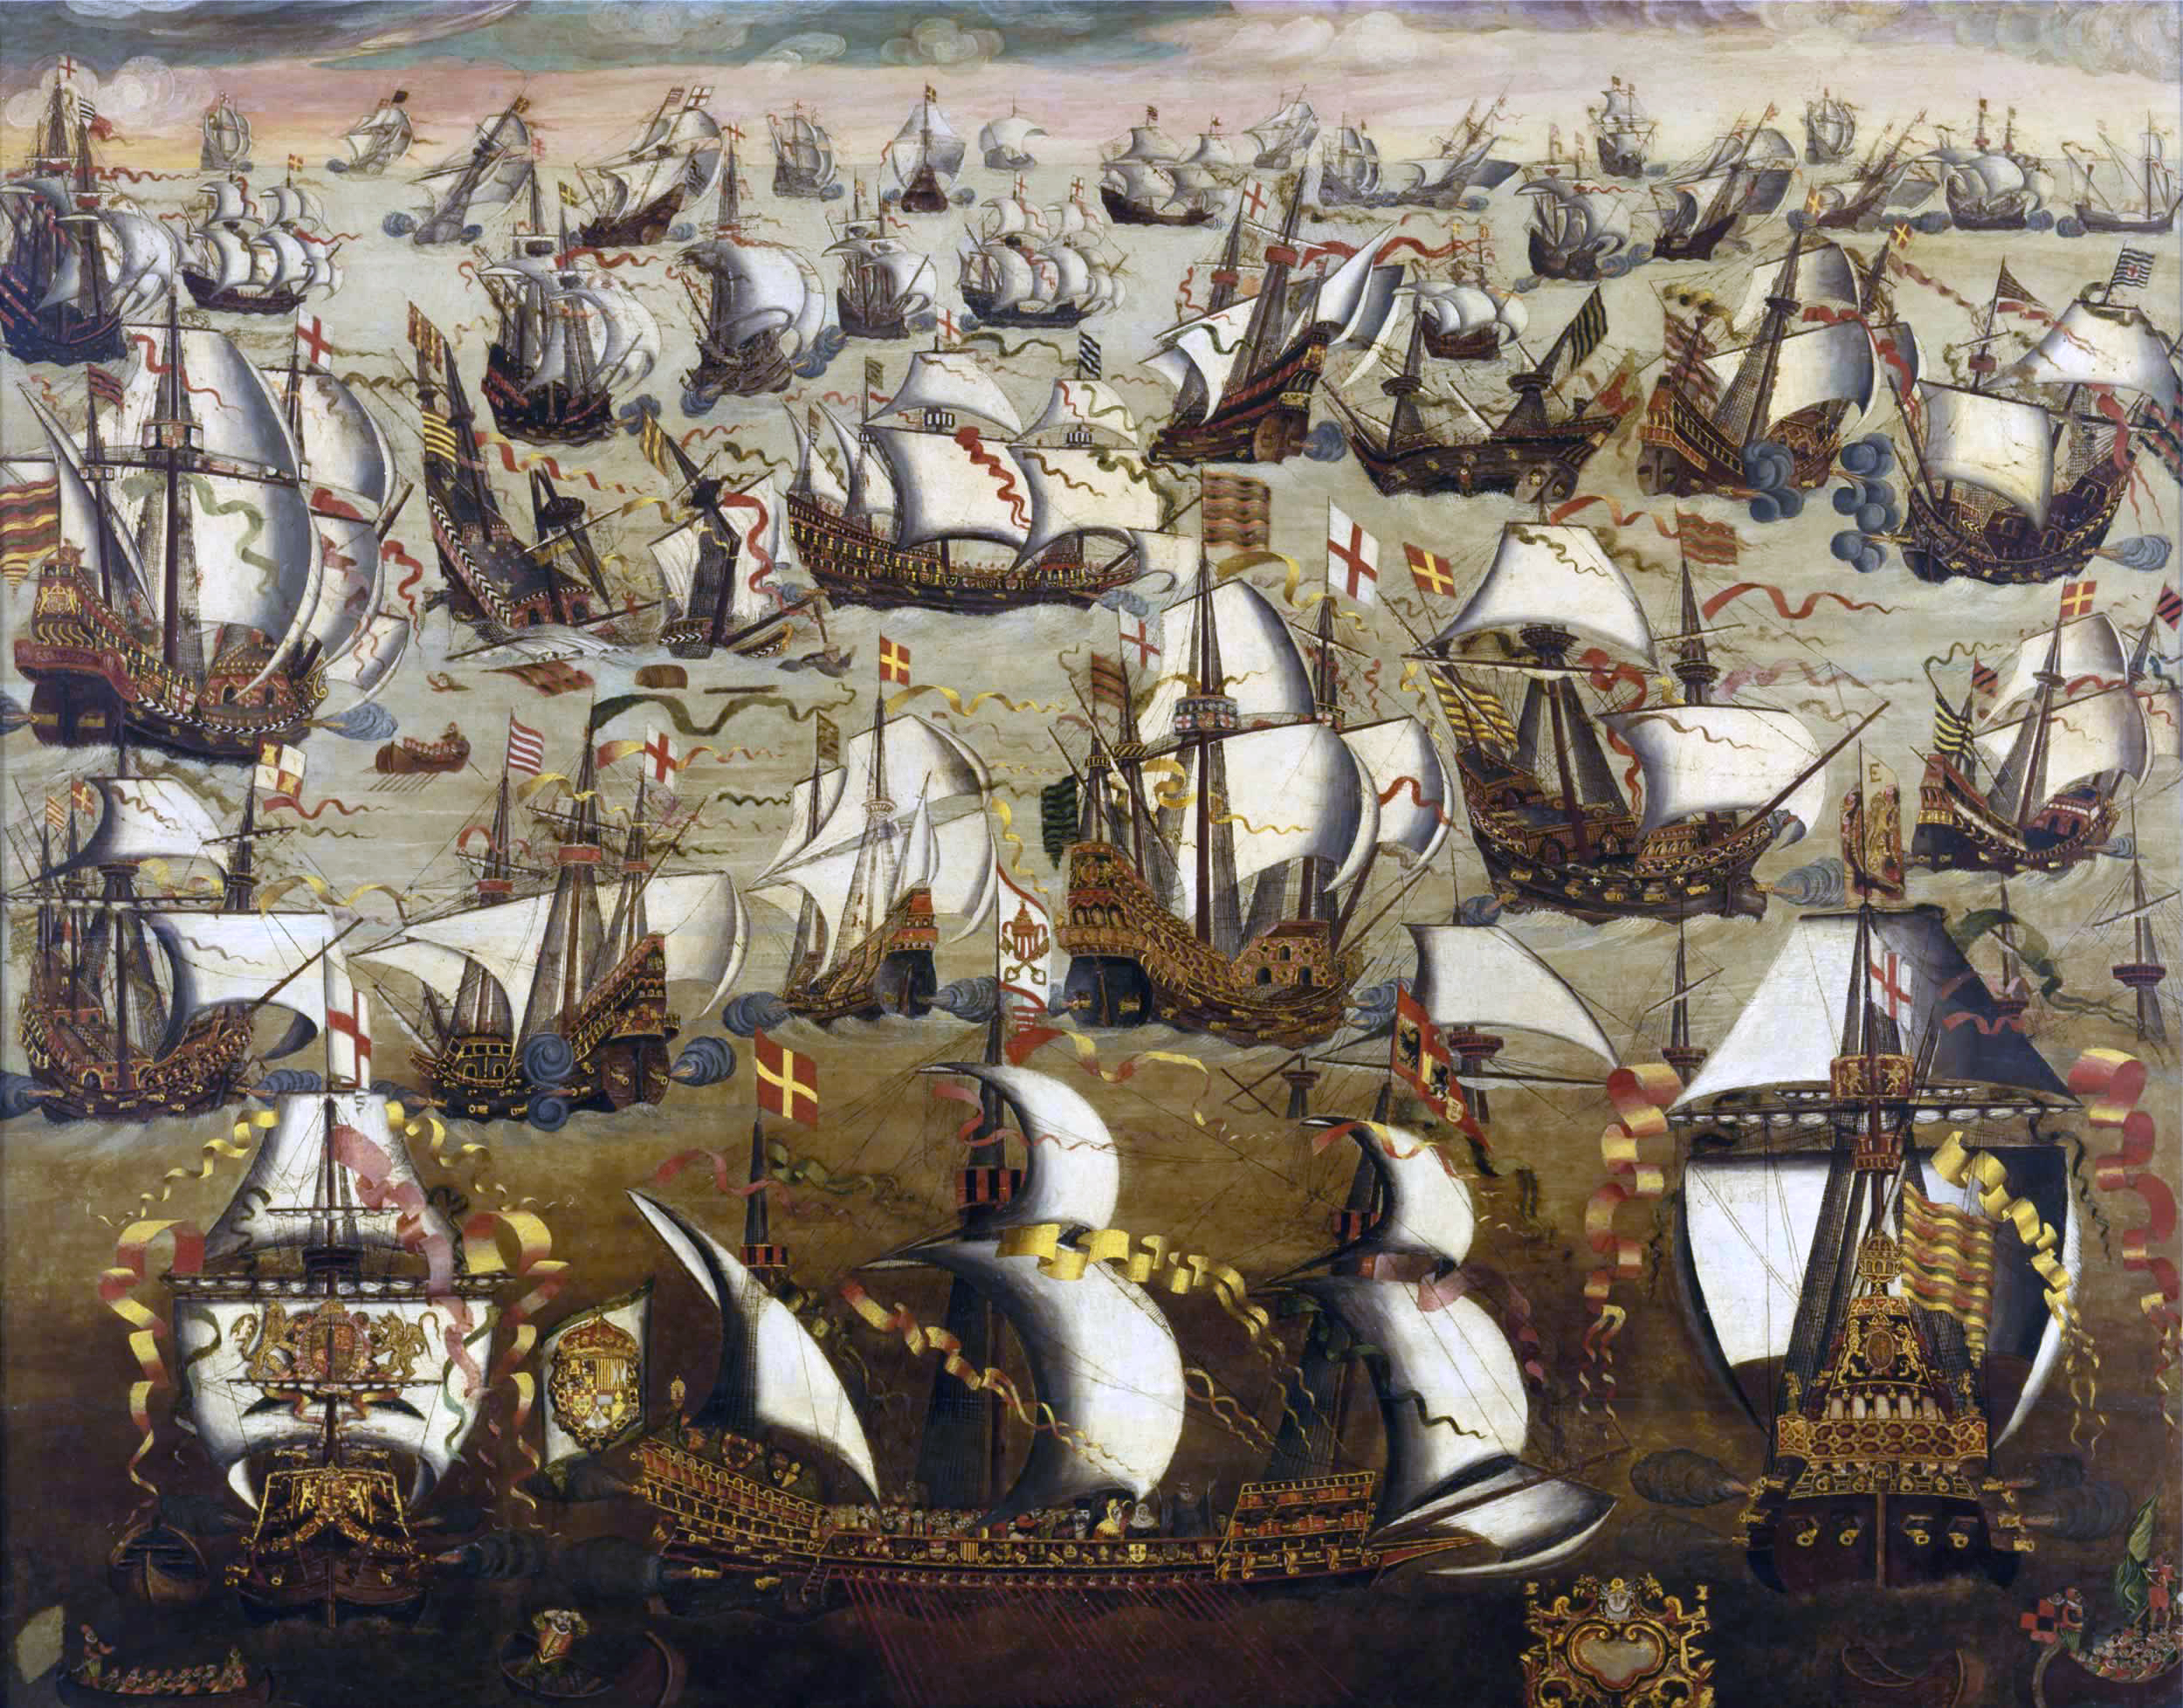 The Spanish Armada fighting the English navy at the Battle of Gravelines in 1588.